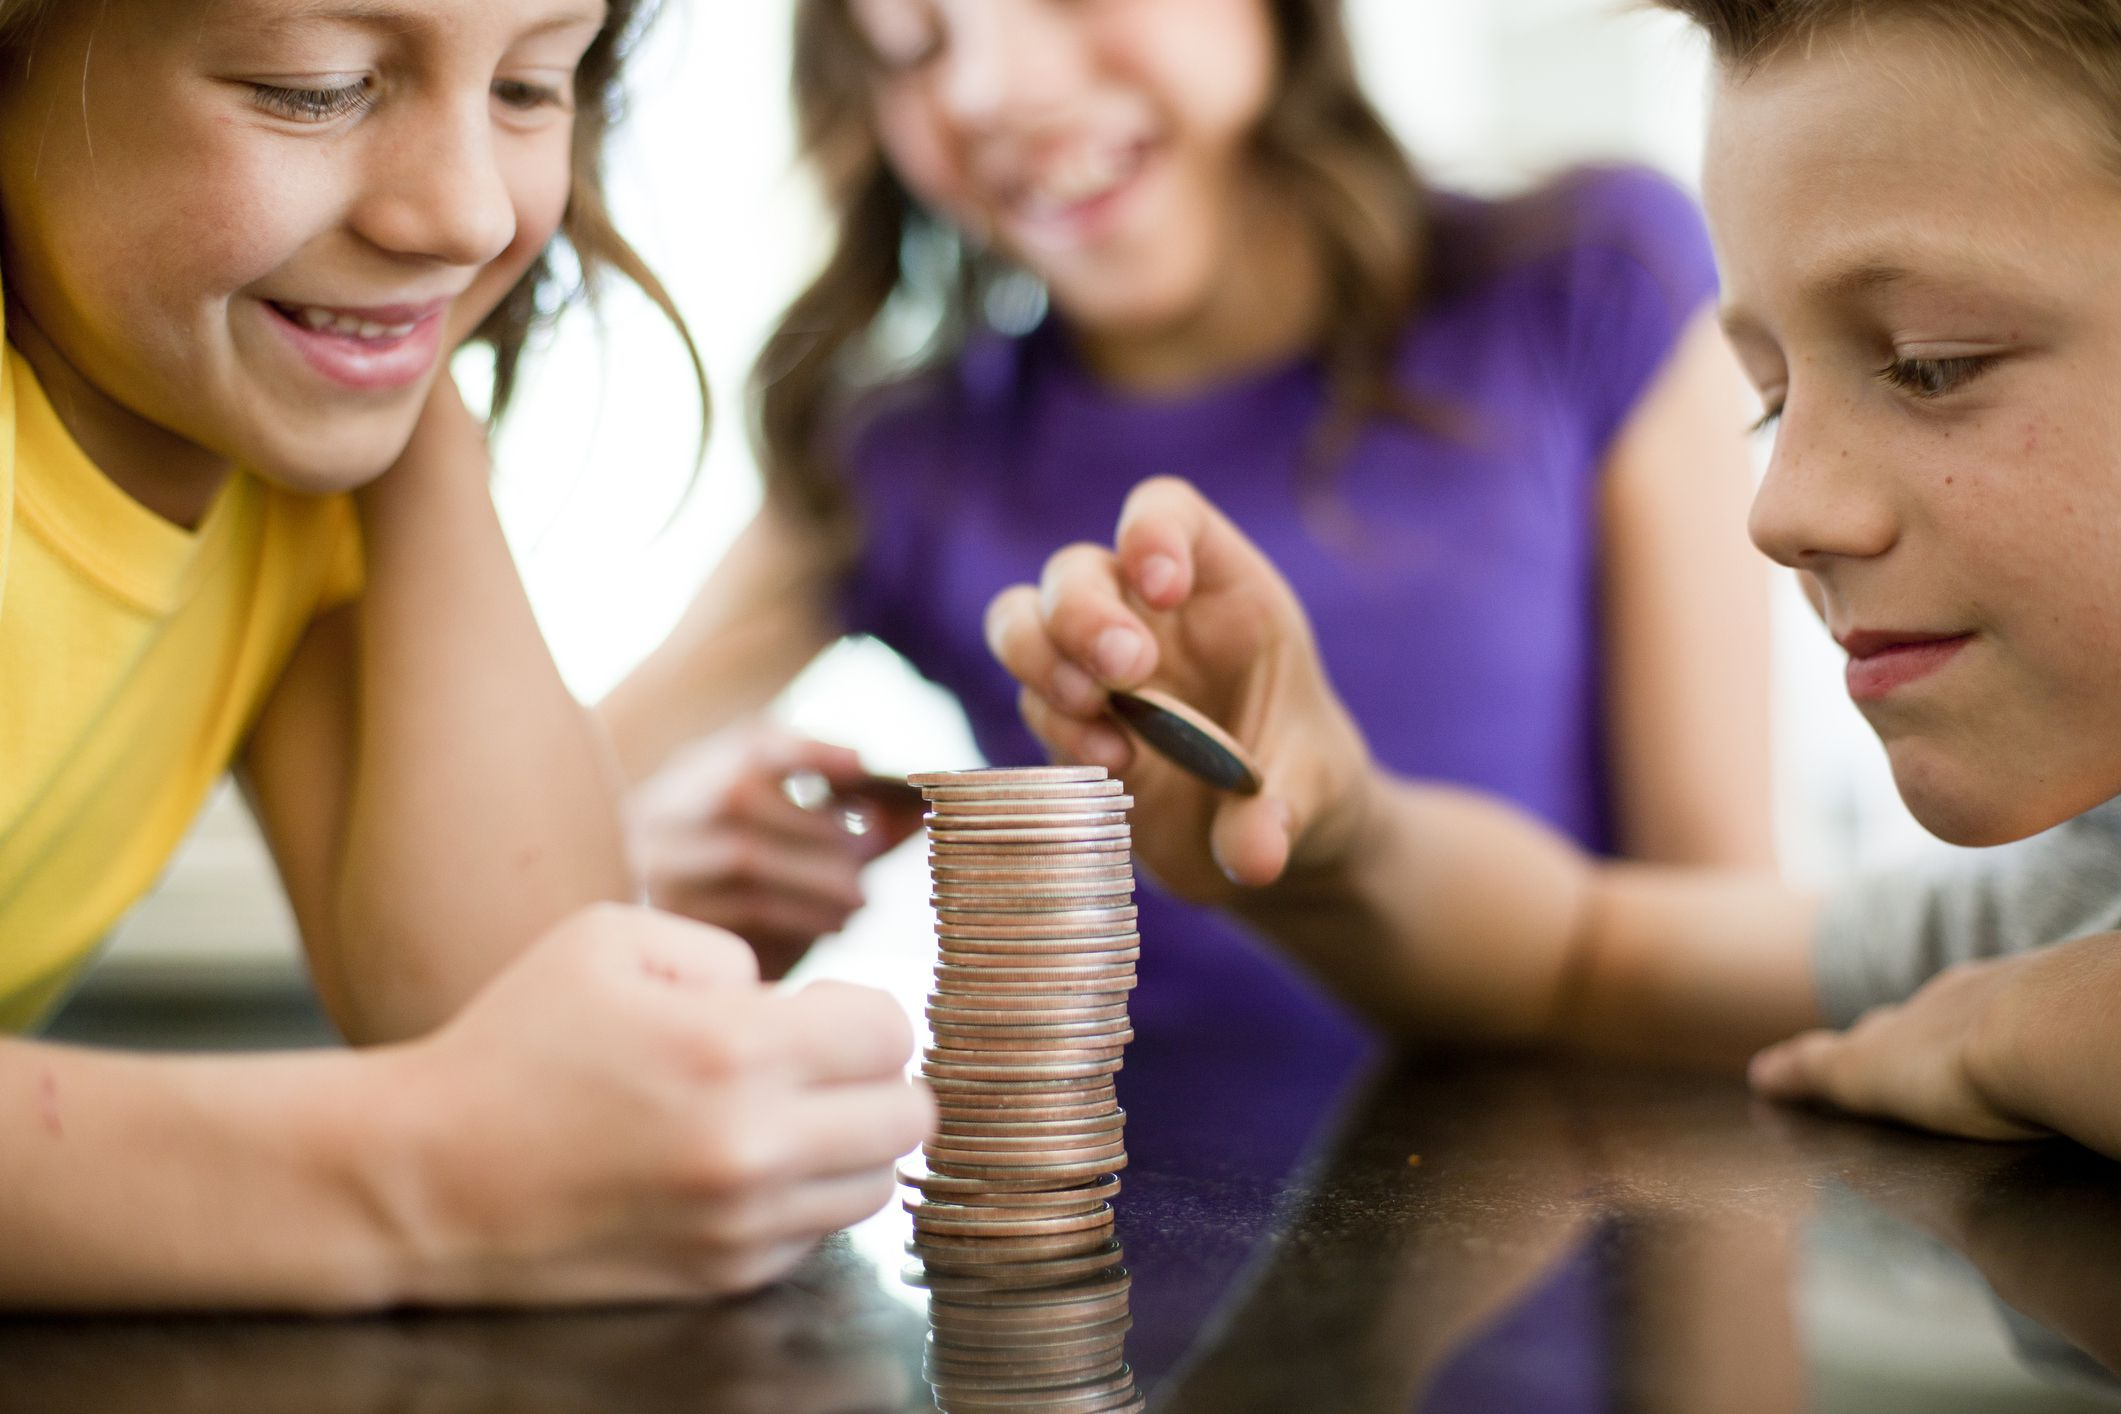 Use Coin Based Games To Teach Money Skills